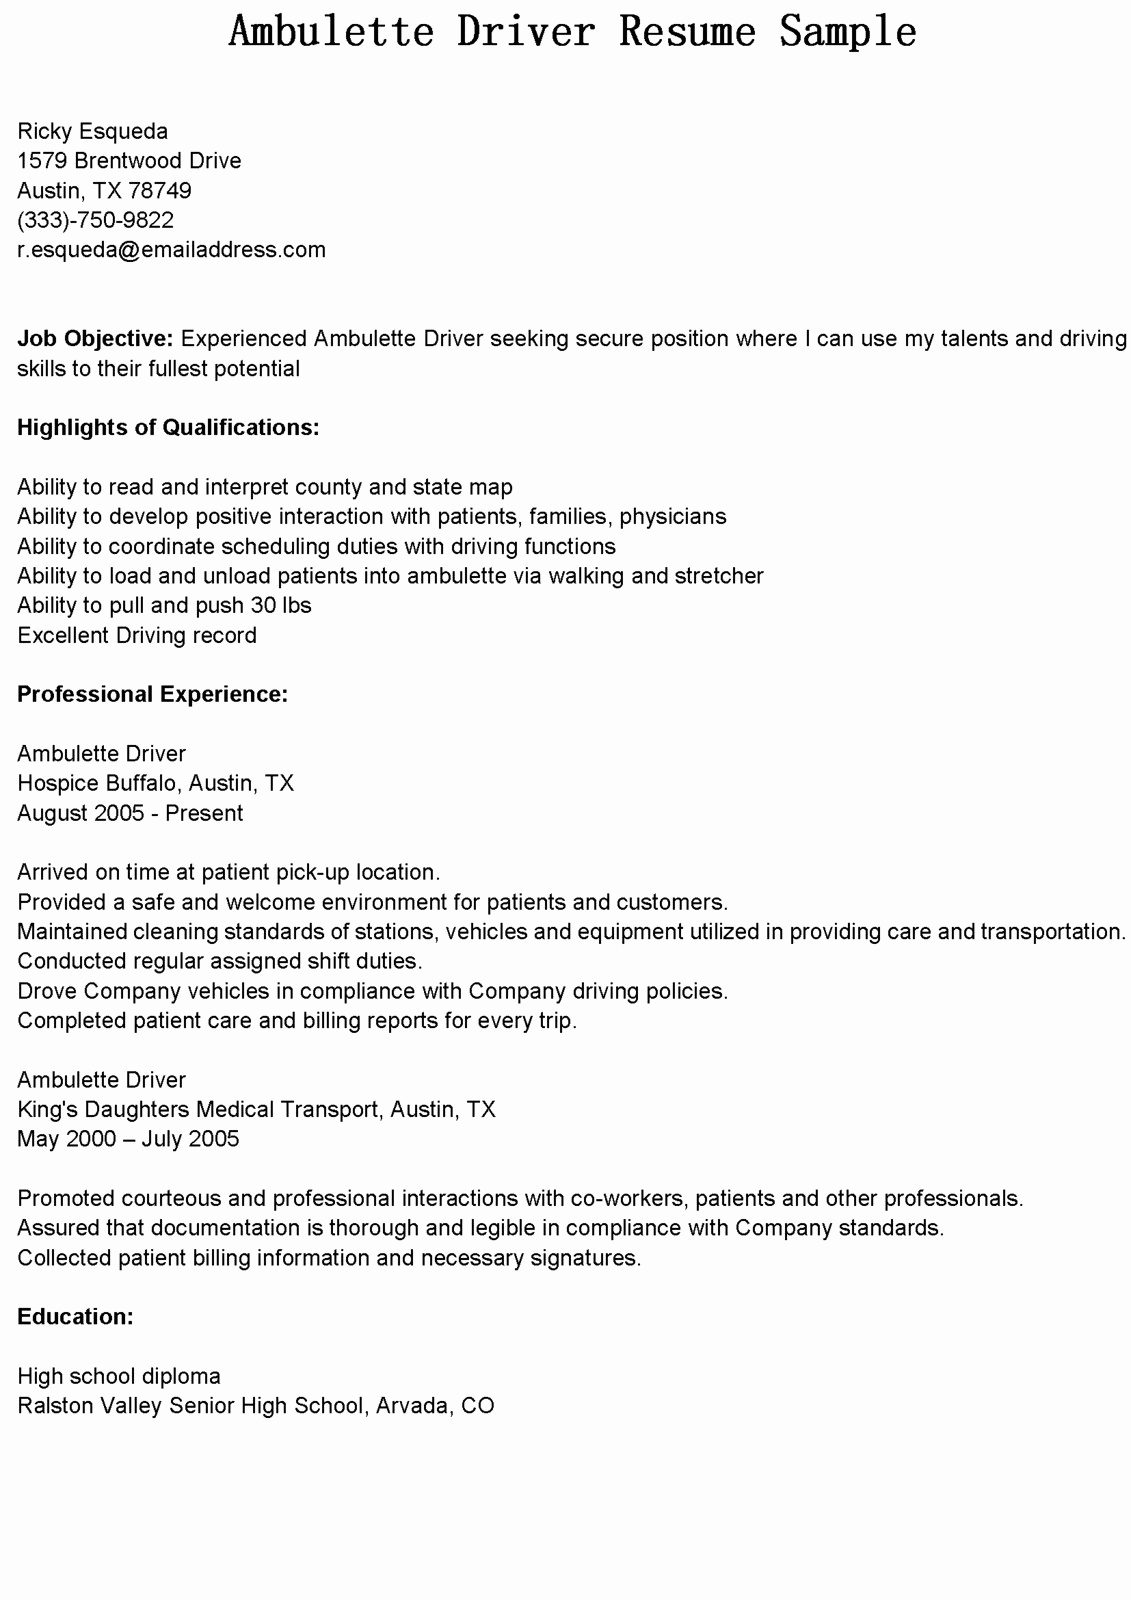 Cdl Truck Driver Resume - Cdl Truck Driver Cover Letter Samples Truck Driving Resume Unique